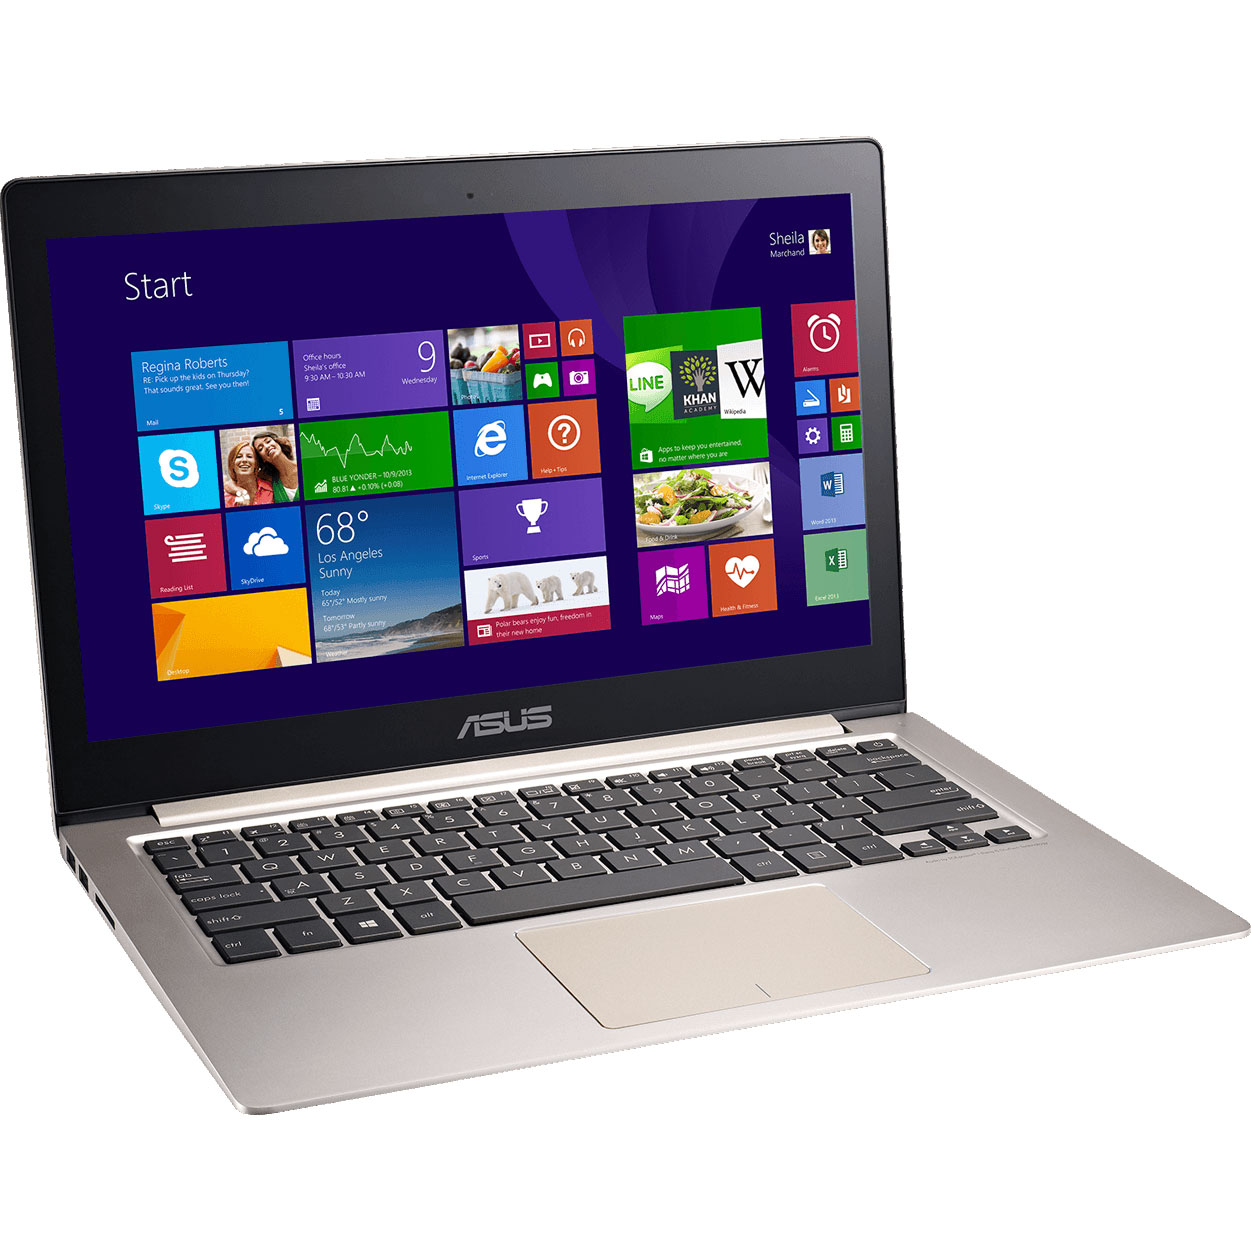 asus zenbook ux303la ro365p pc portable asus sur. Black Bedroom Furniture Sets. Home Design Ideas